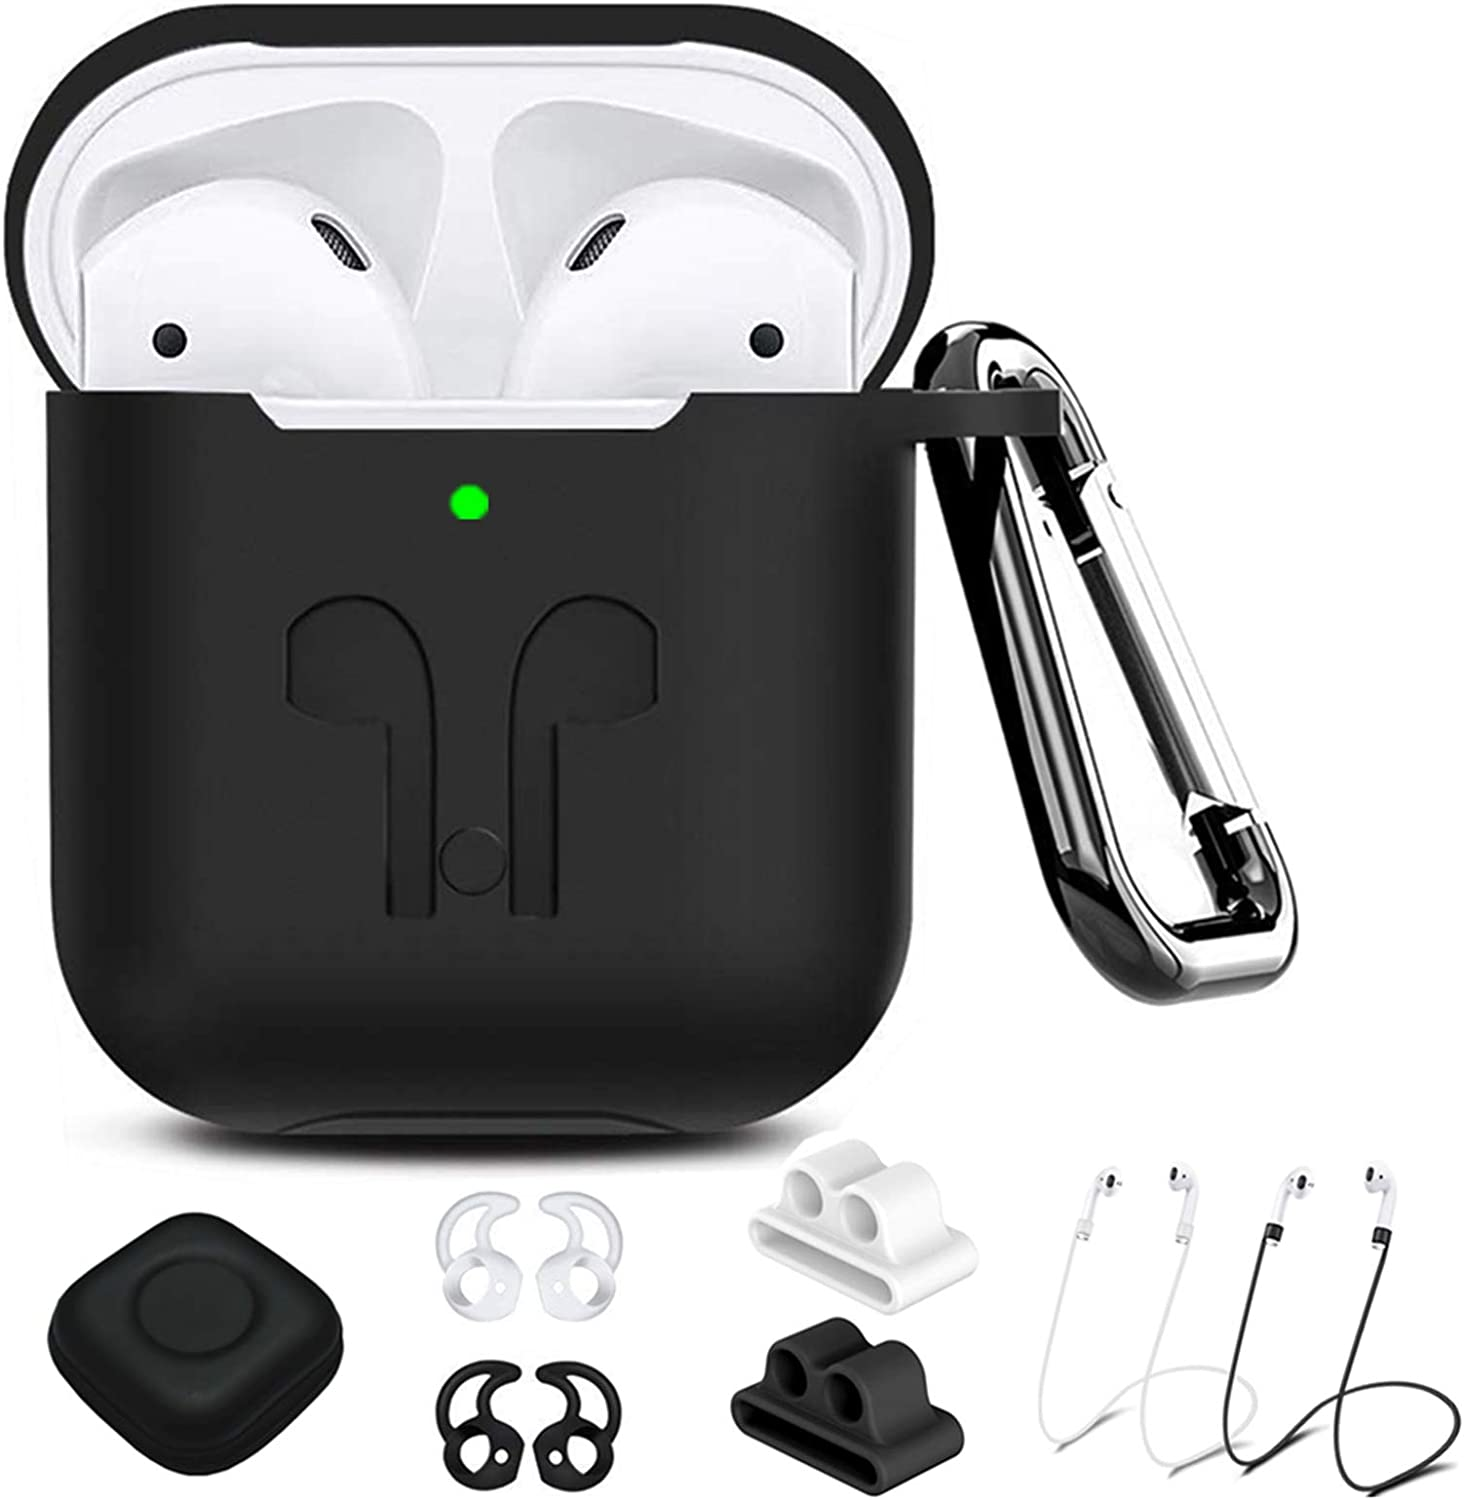 AirPods Case Compatible Apple Airpods 2&1 , 9 in 1 Airpods Accessories Kits Protective Silicone Cover and Skin with Earpods Watch Band Holder/Ear Hook/Strap/Clip/Keychain/Grip[LED Visible]-Black